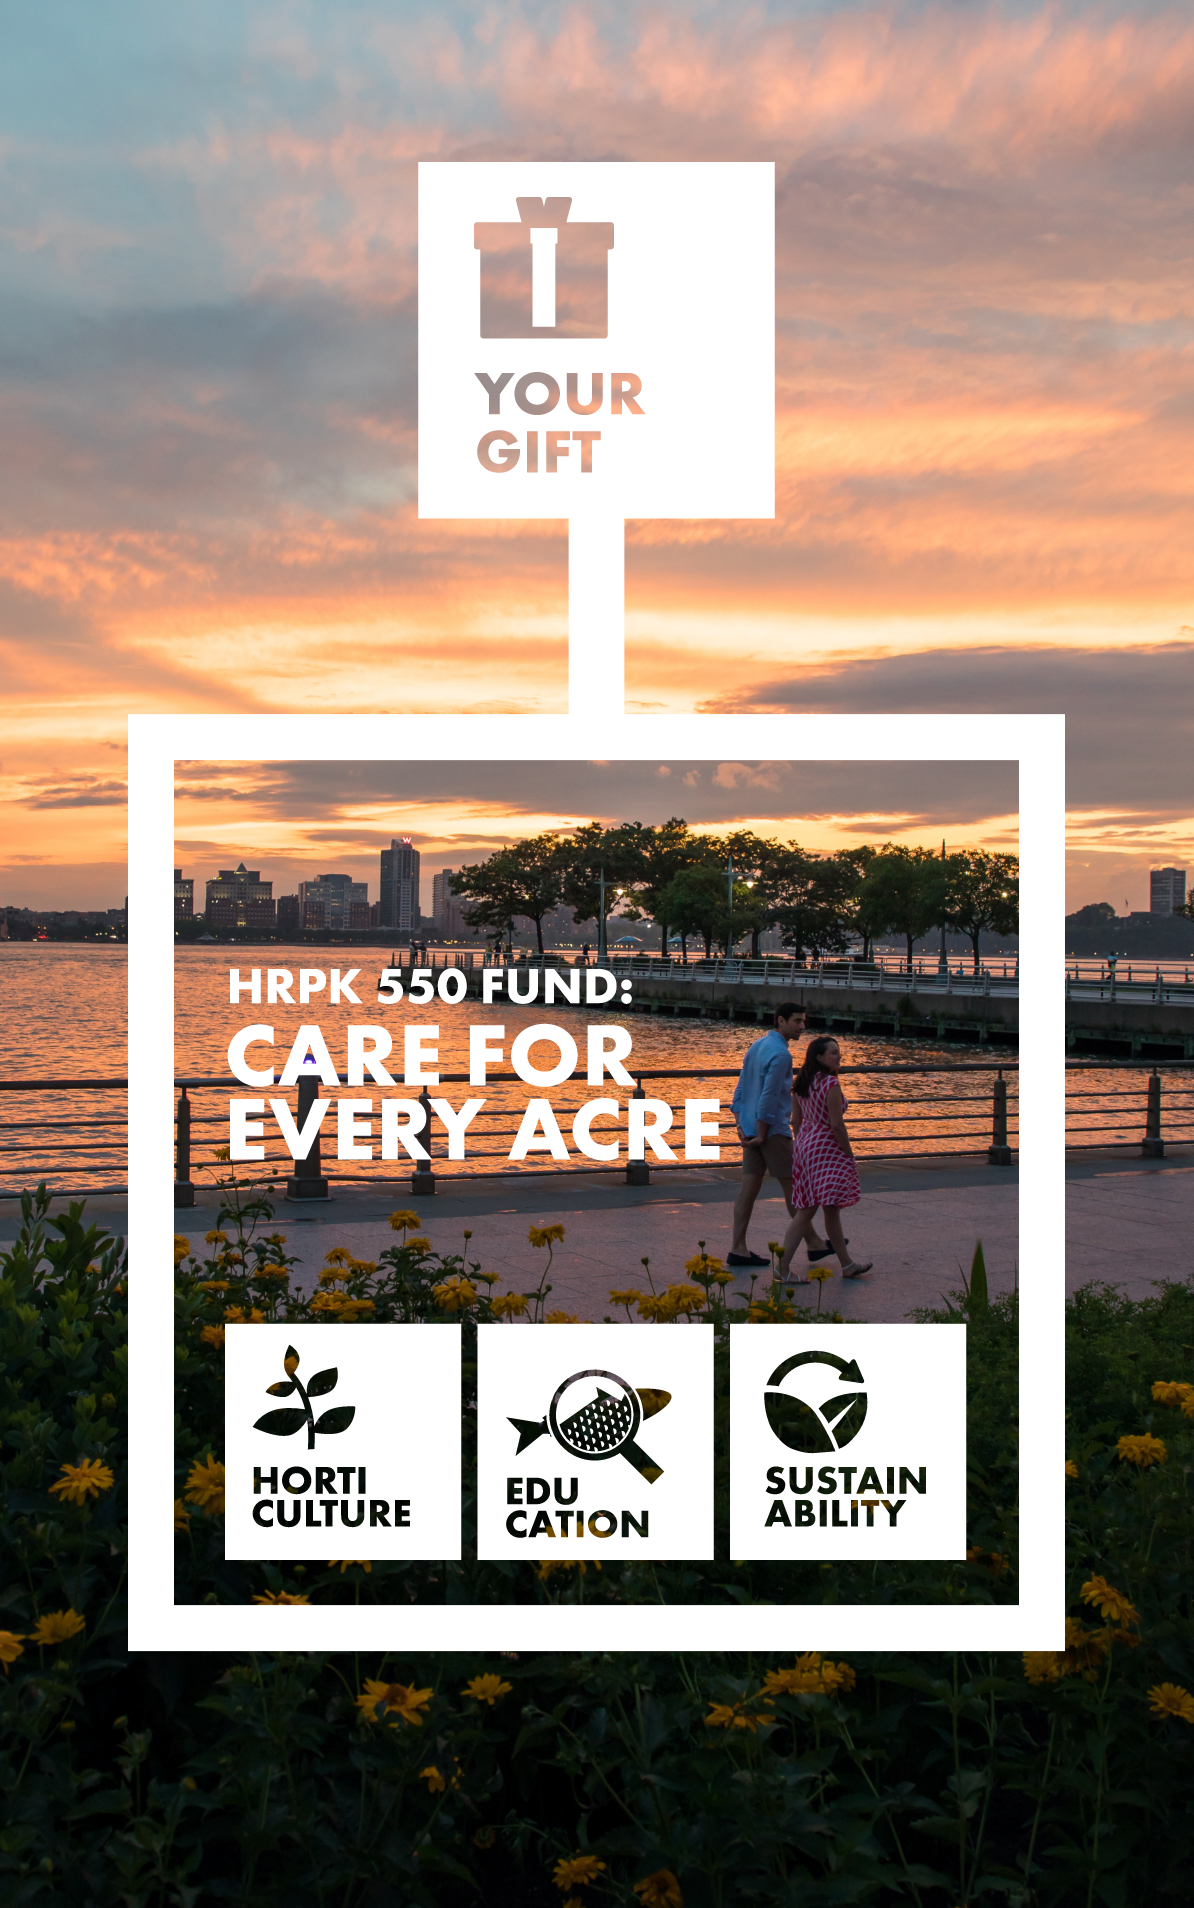 sunset over pier and Hudson RIver with HRPK 550 art